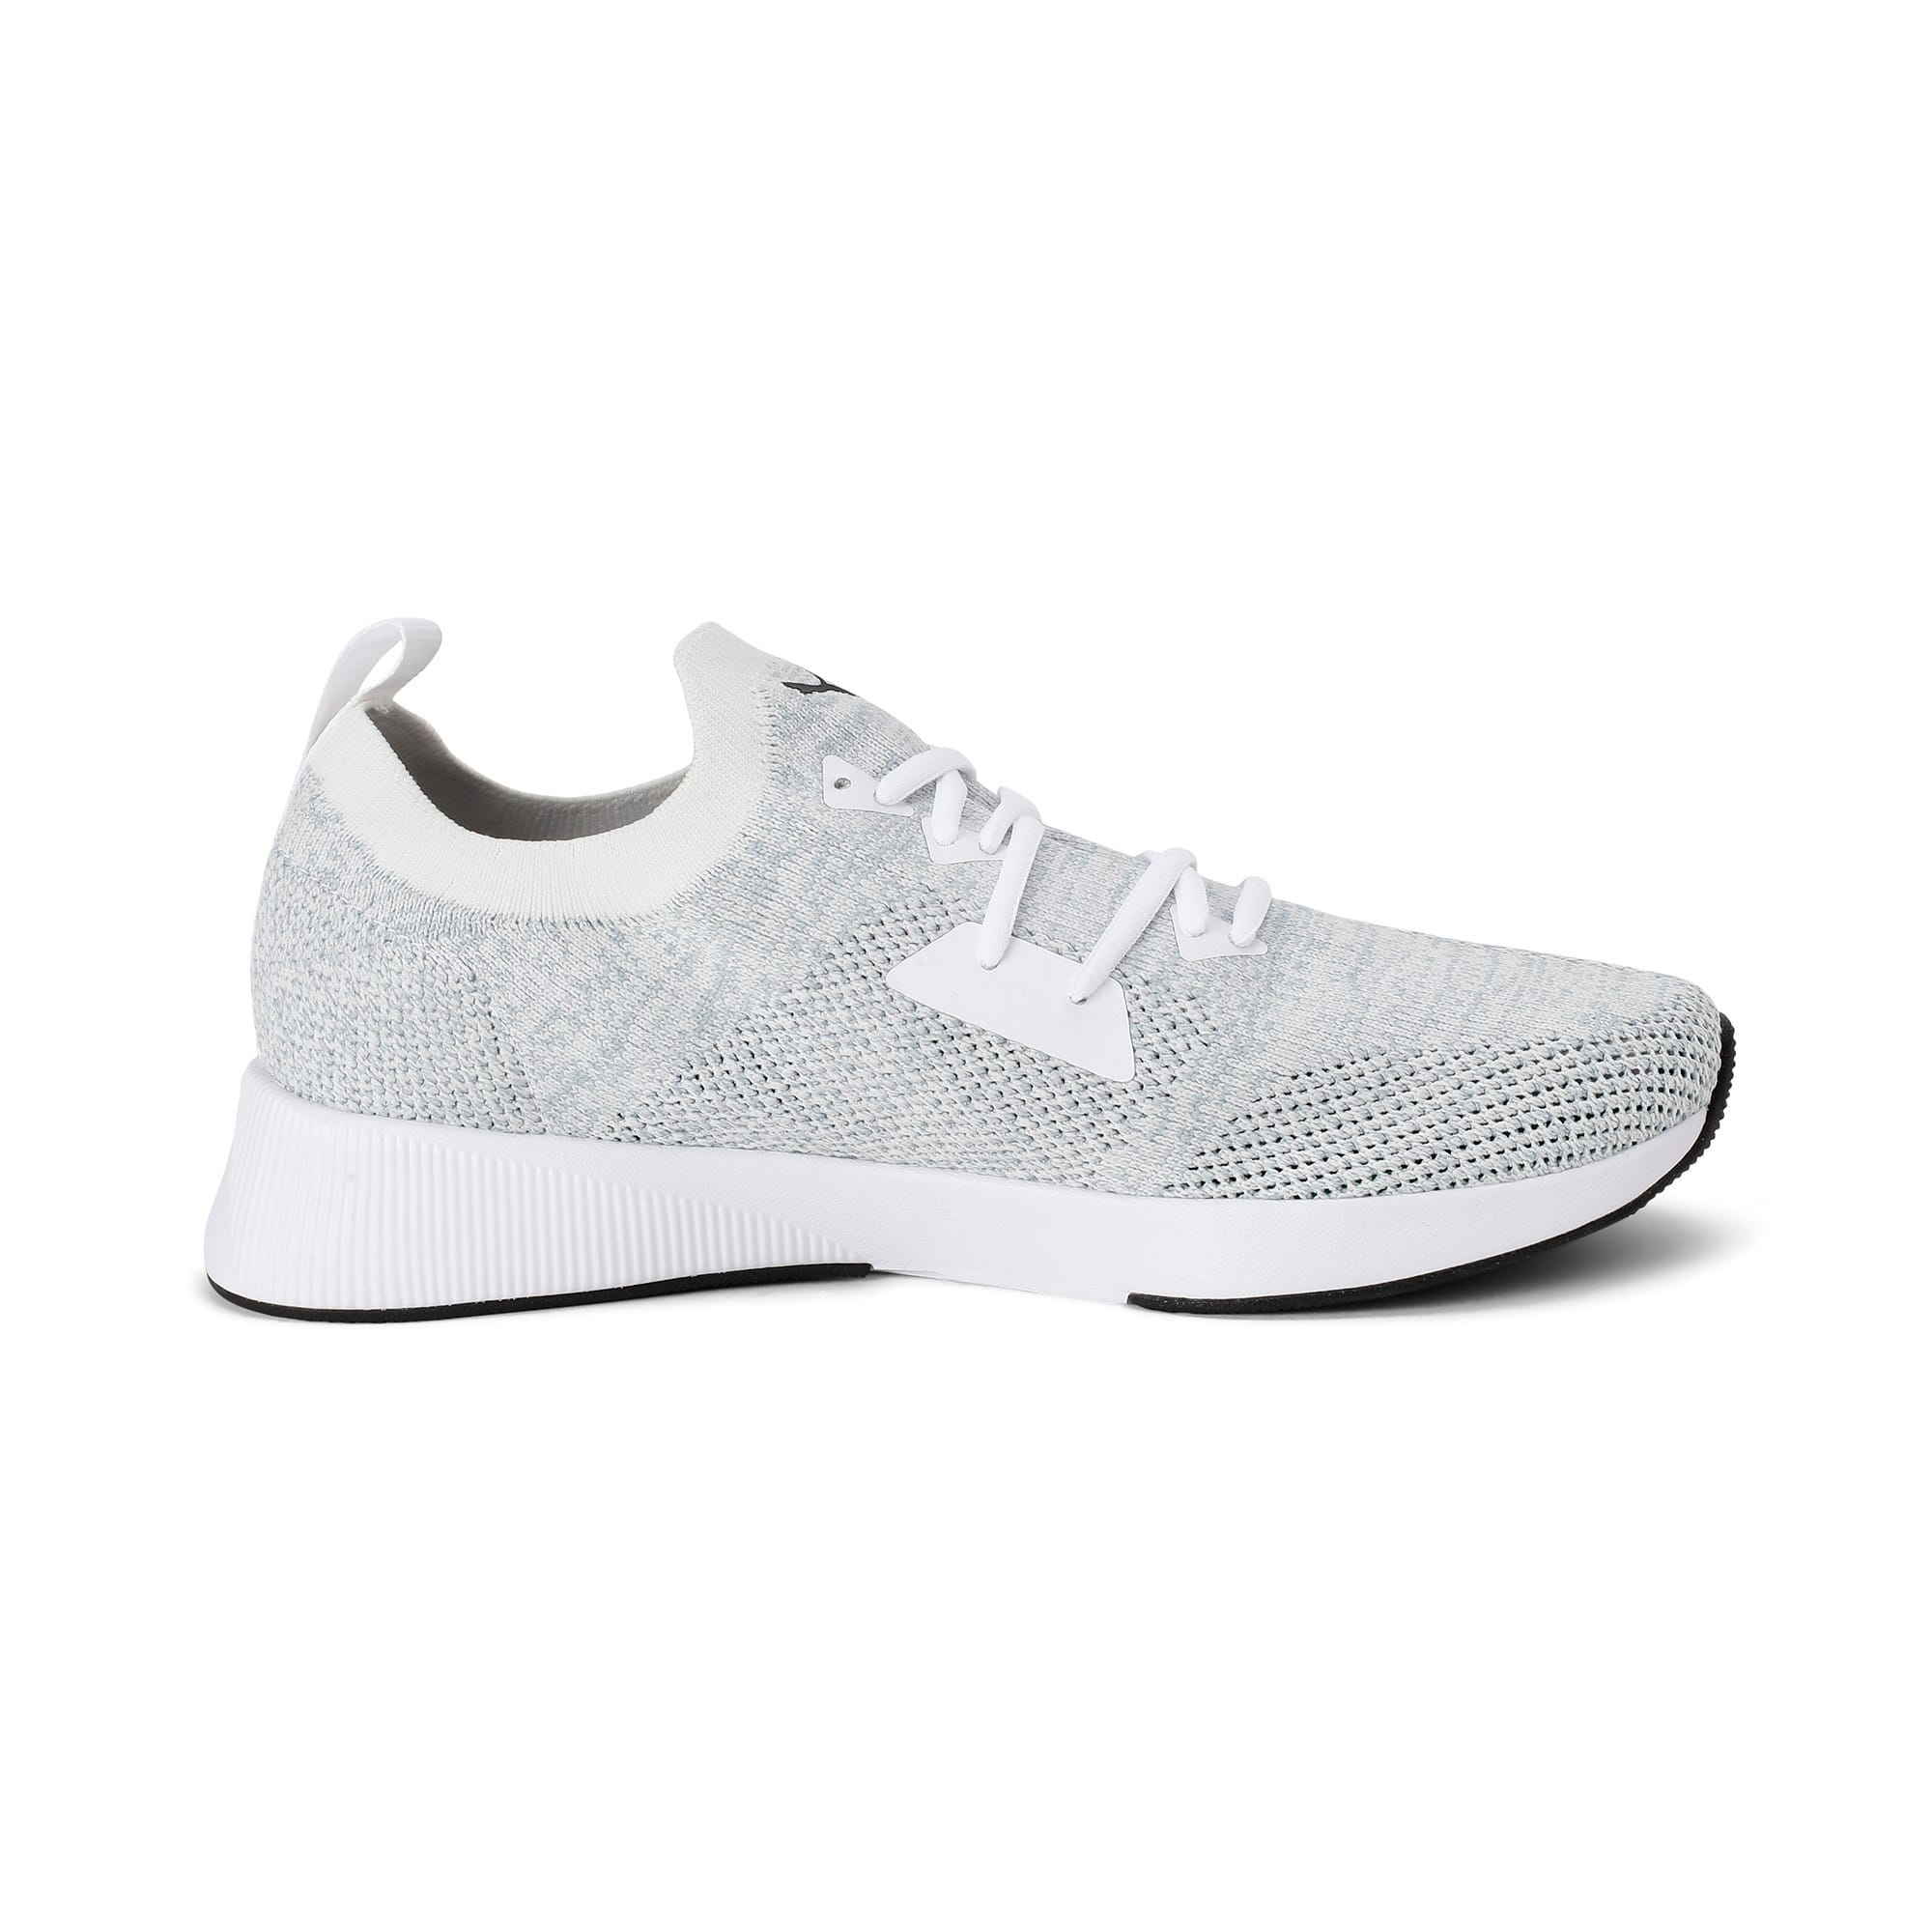 Thumbnail 5 of Flyer Runner Engineered Knit Men's Running Shoes, Puma White-Quarry-Puma Black, medium-IND